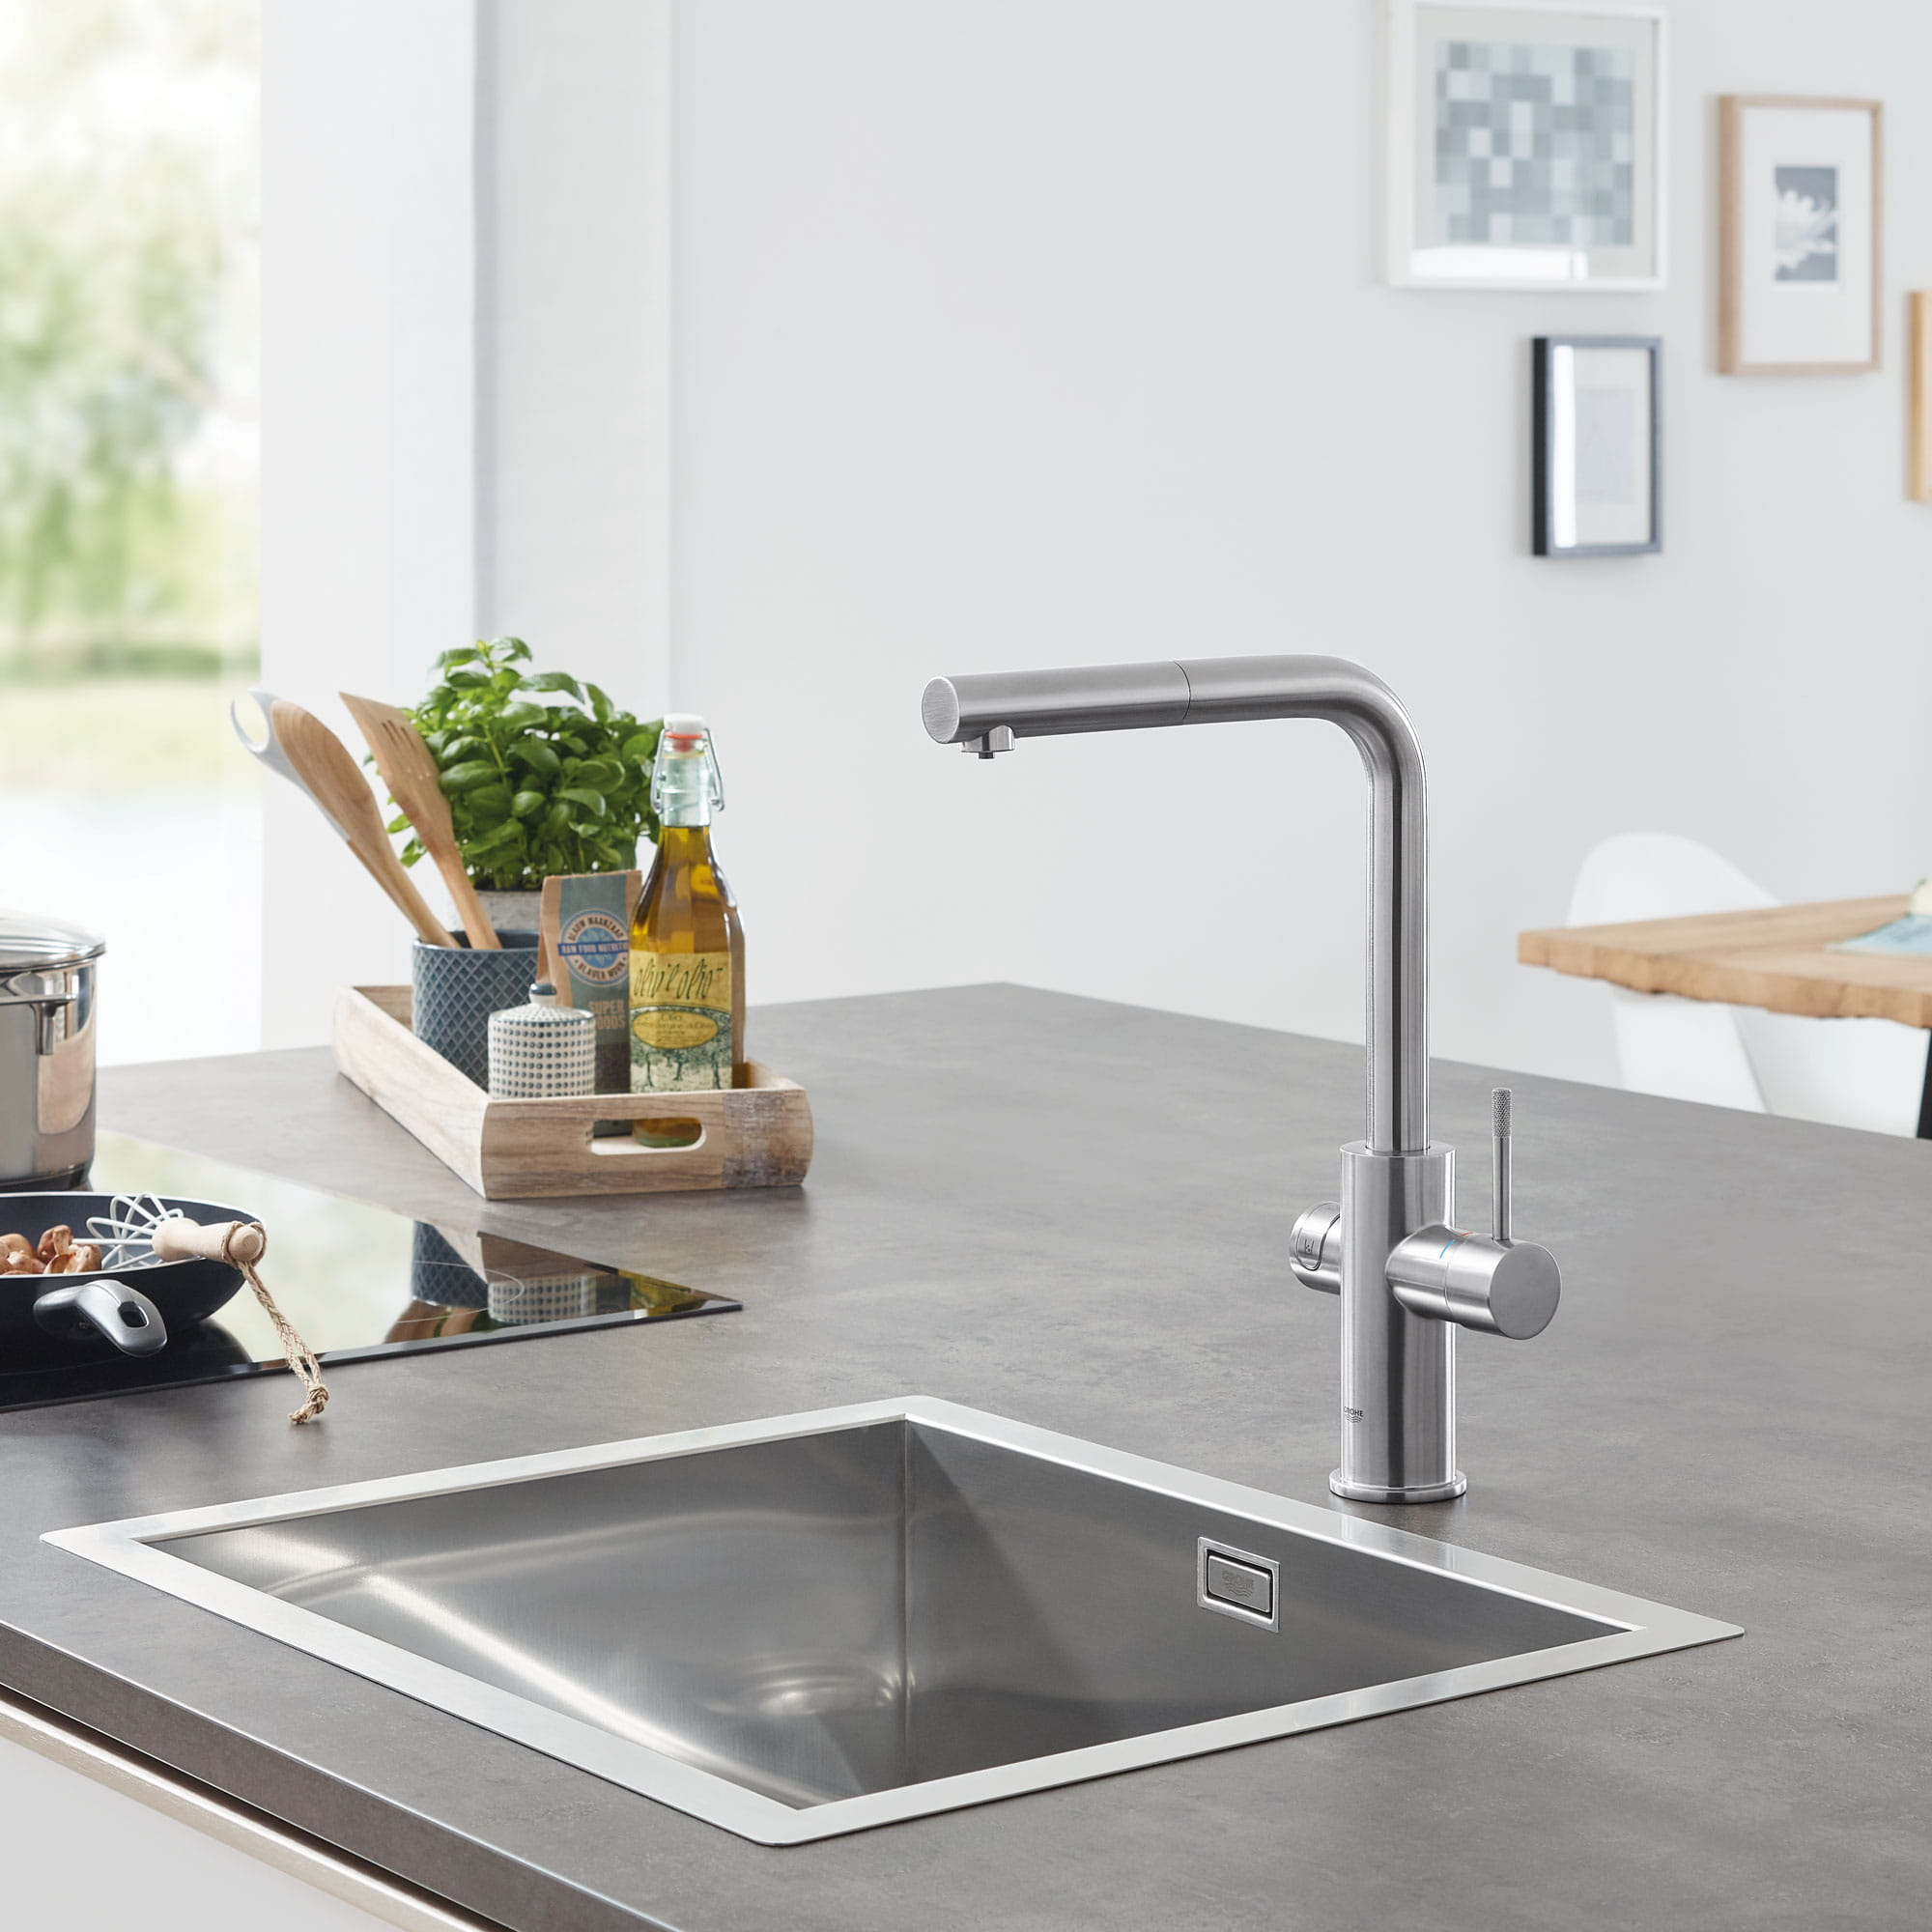 GROHE Blue Chilled & Sparkling Filtered Water Faucet